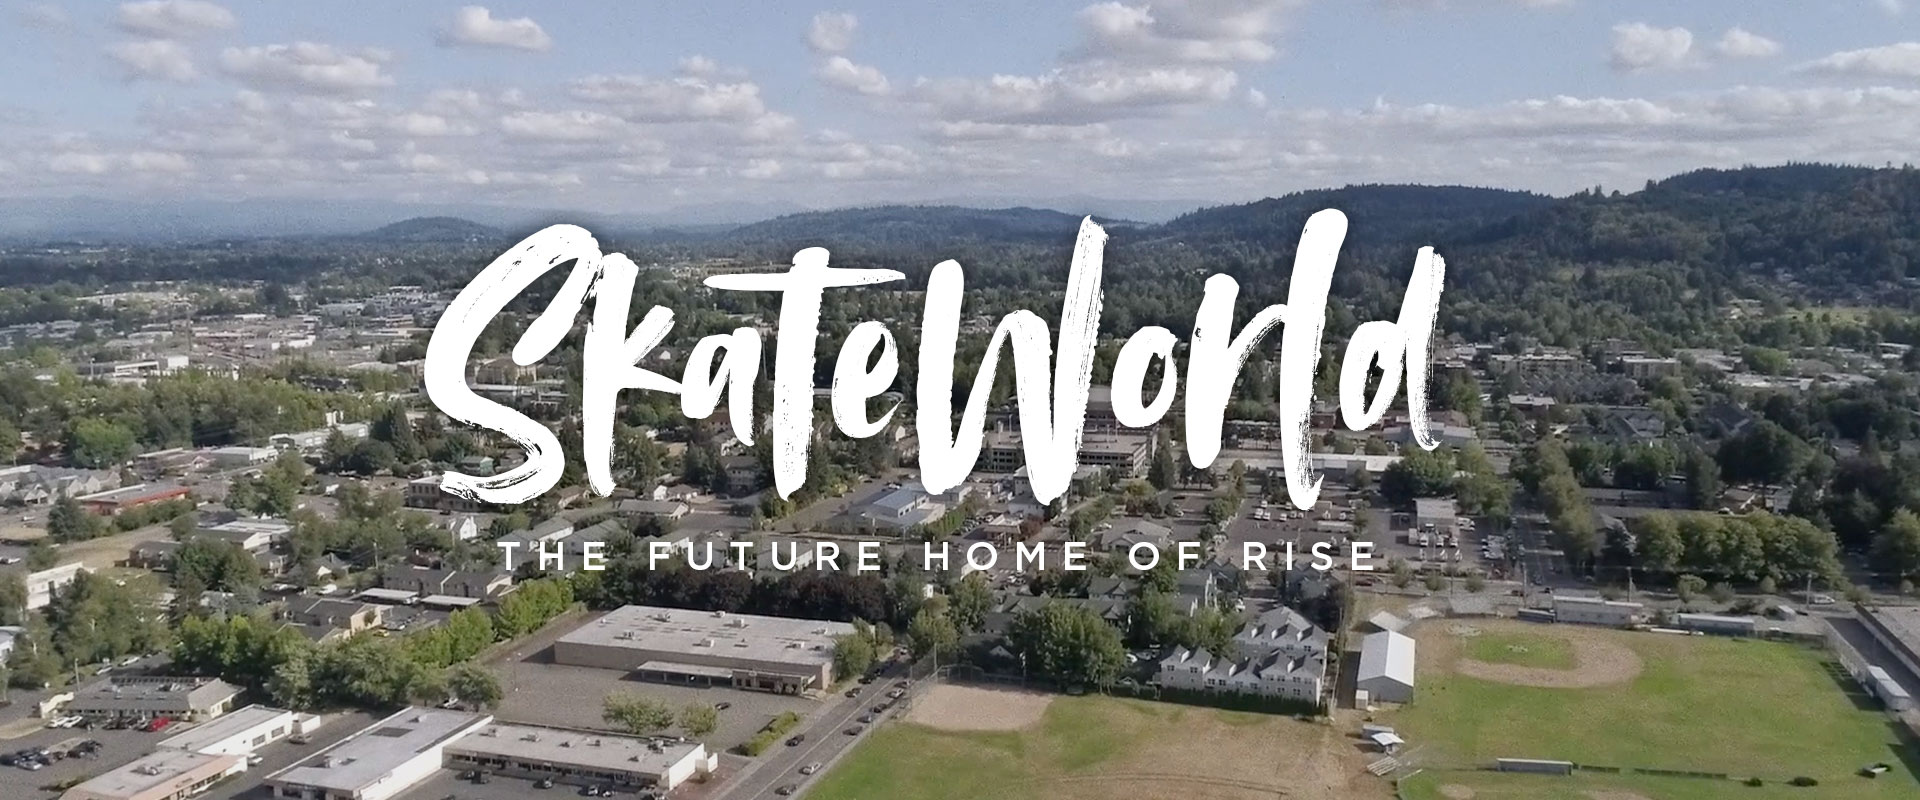 SkateWorld | The Future Home of Rise